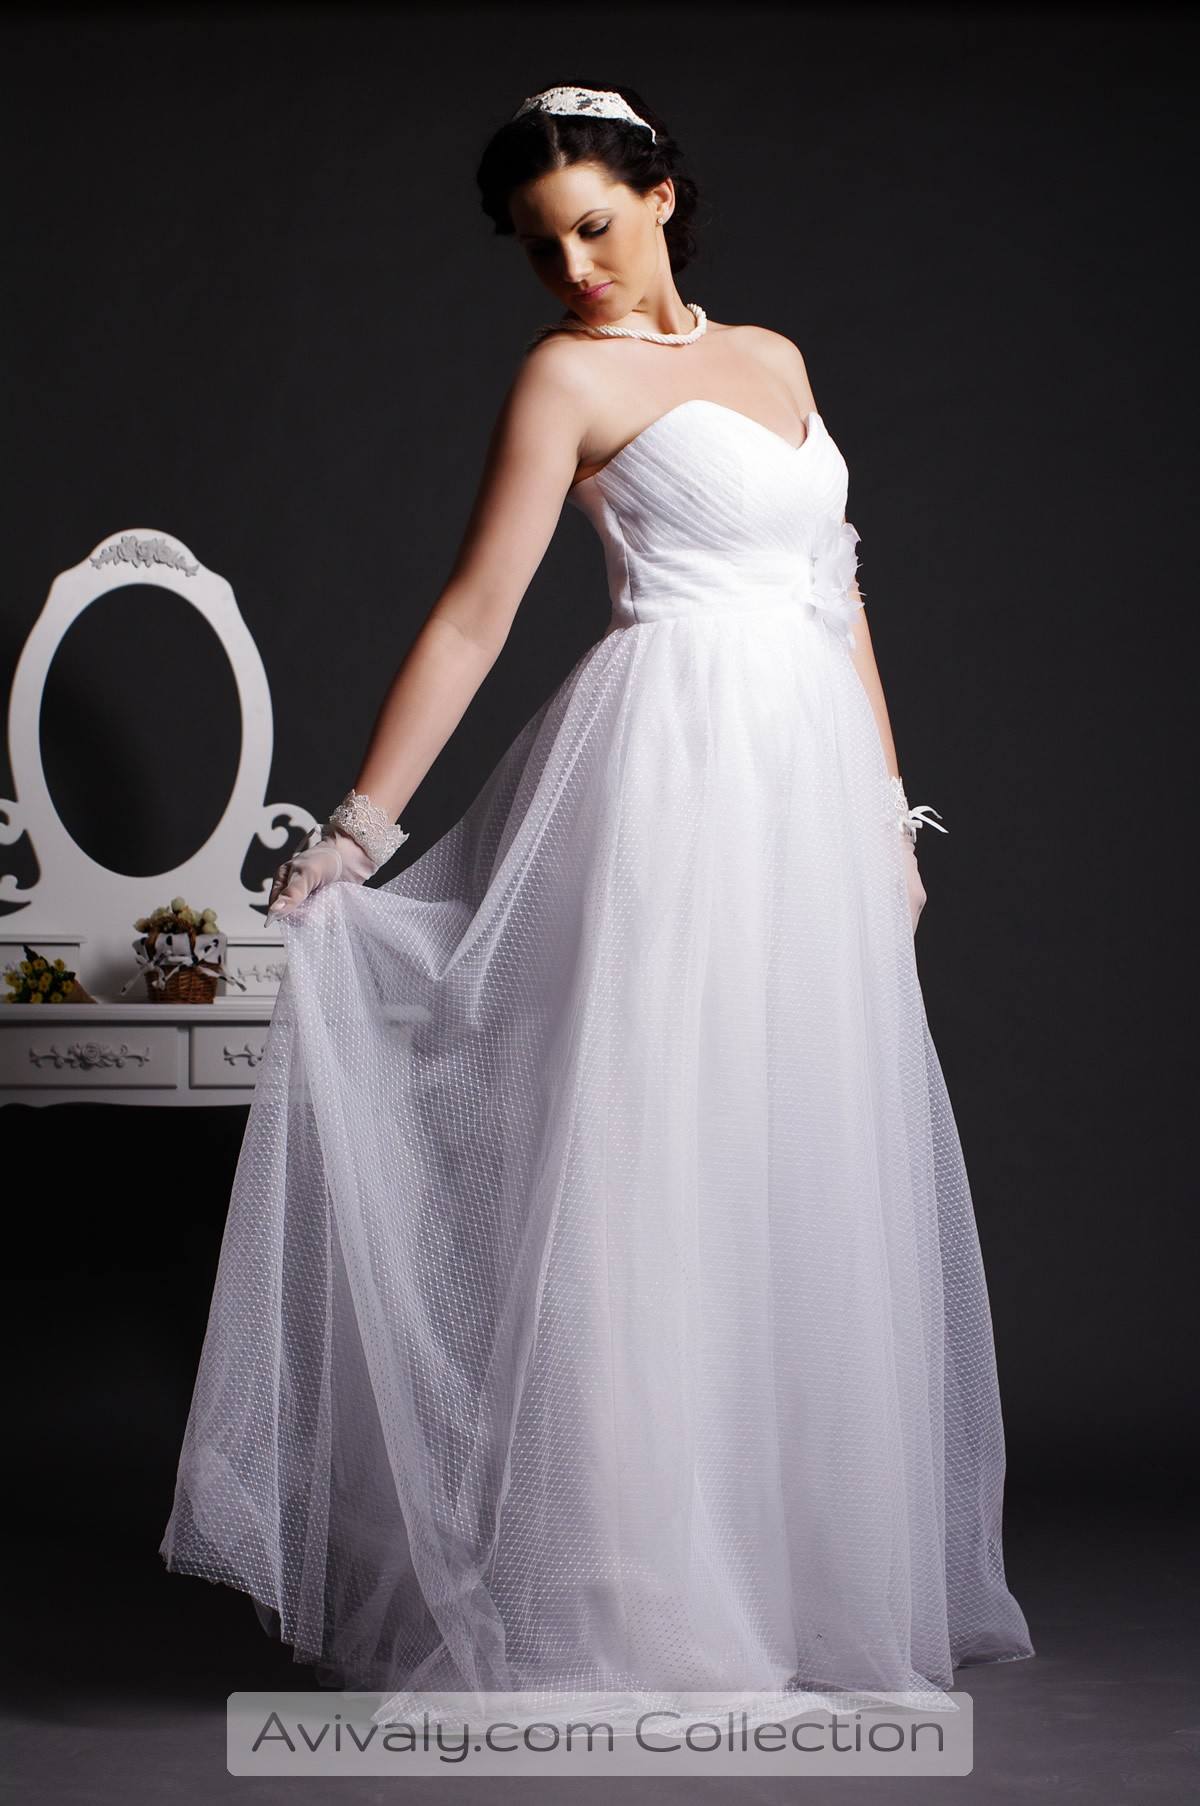 Nicola - Dotted Tulle Shapes the Fairytale Floor Length Dress in A-line Silhouette